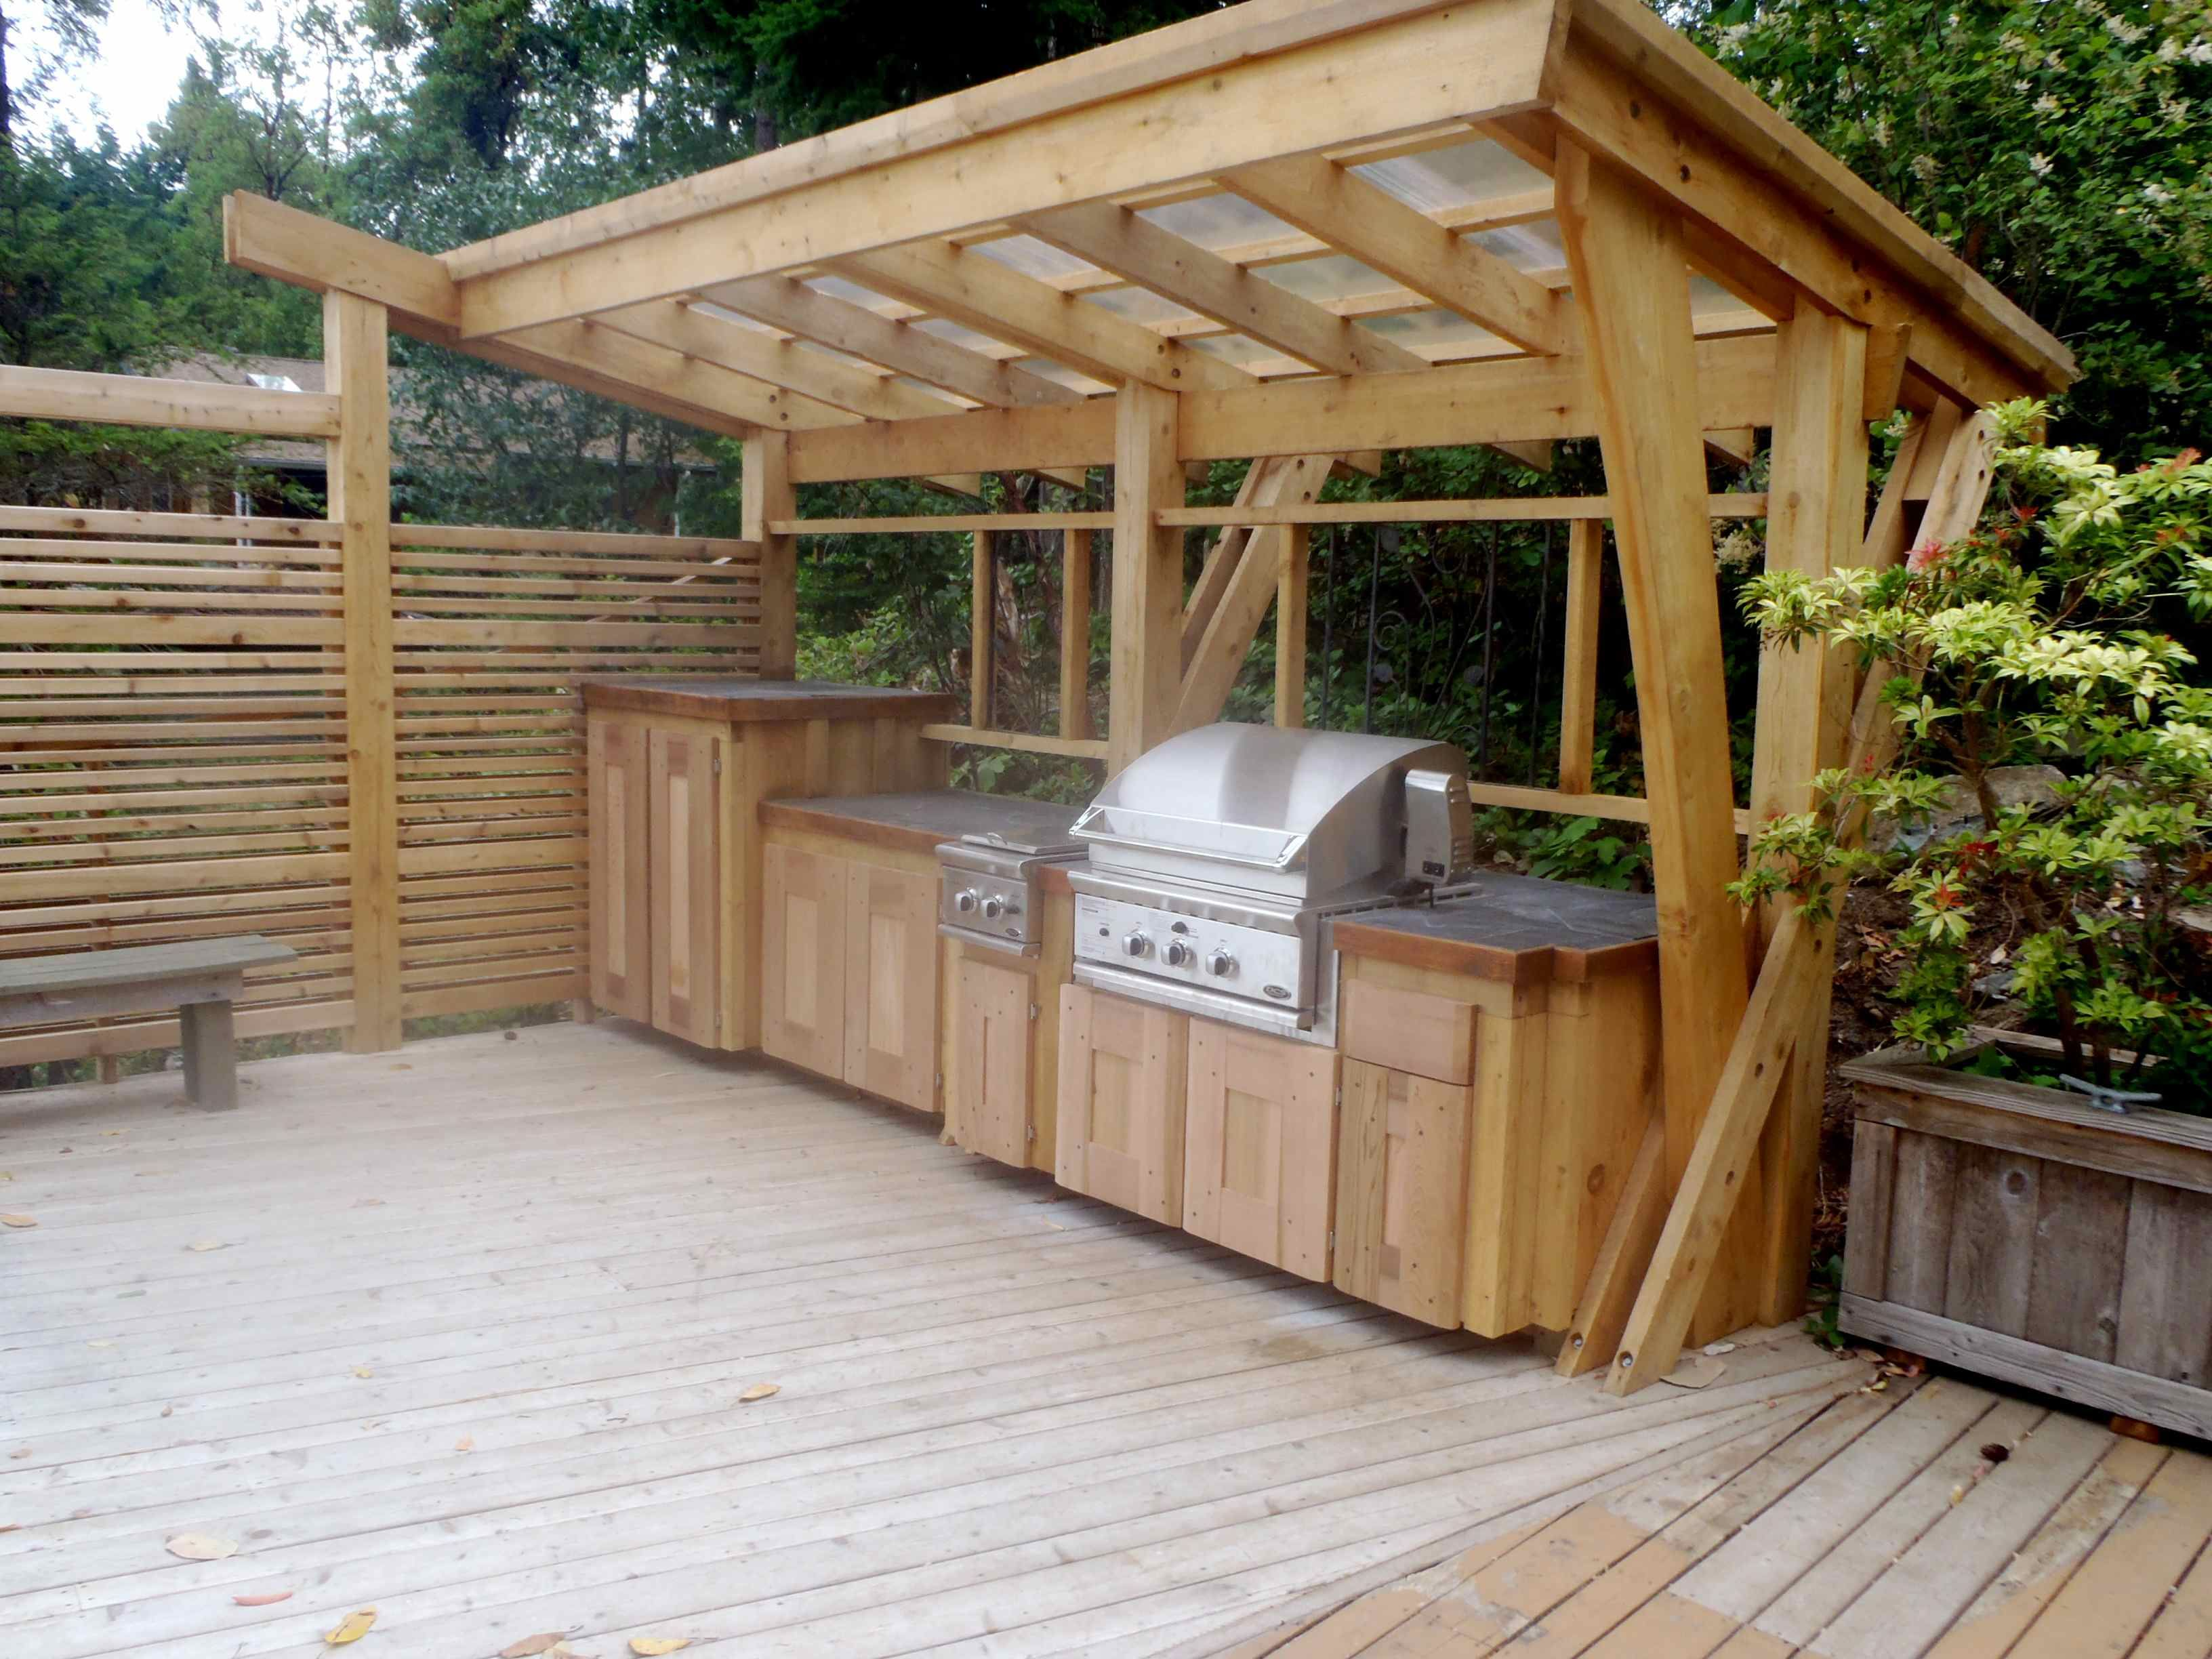 Outdoor kitchen cedar bbq cover outdoor for Covered outdoor kitchen plans